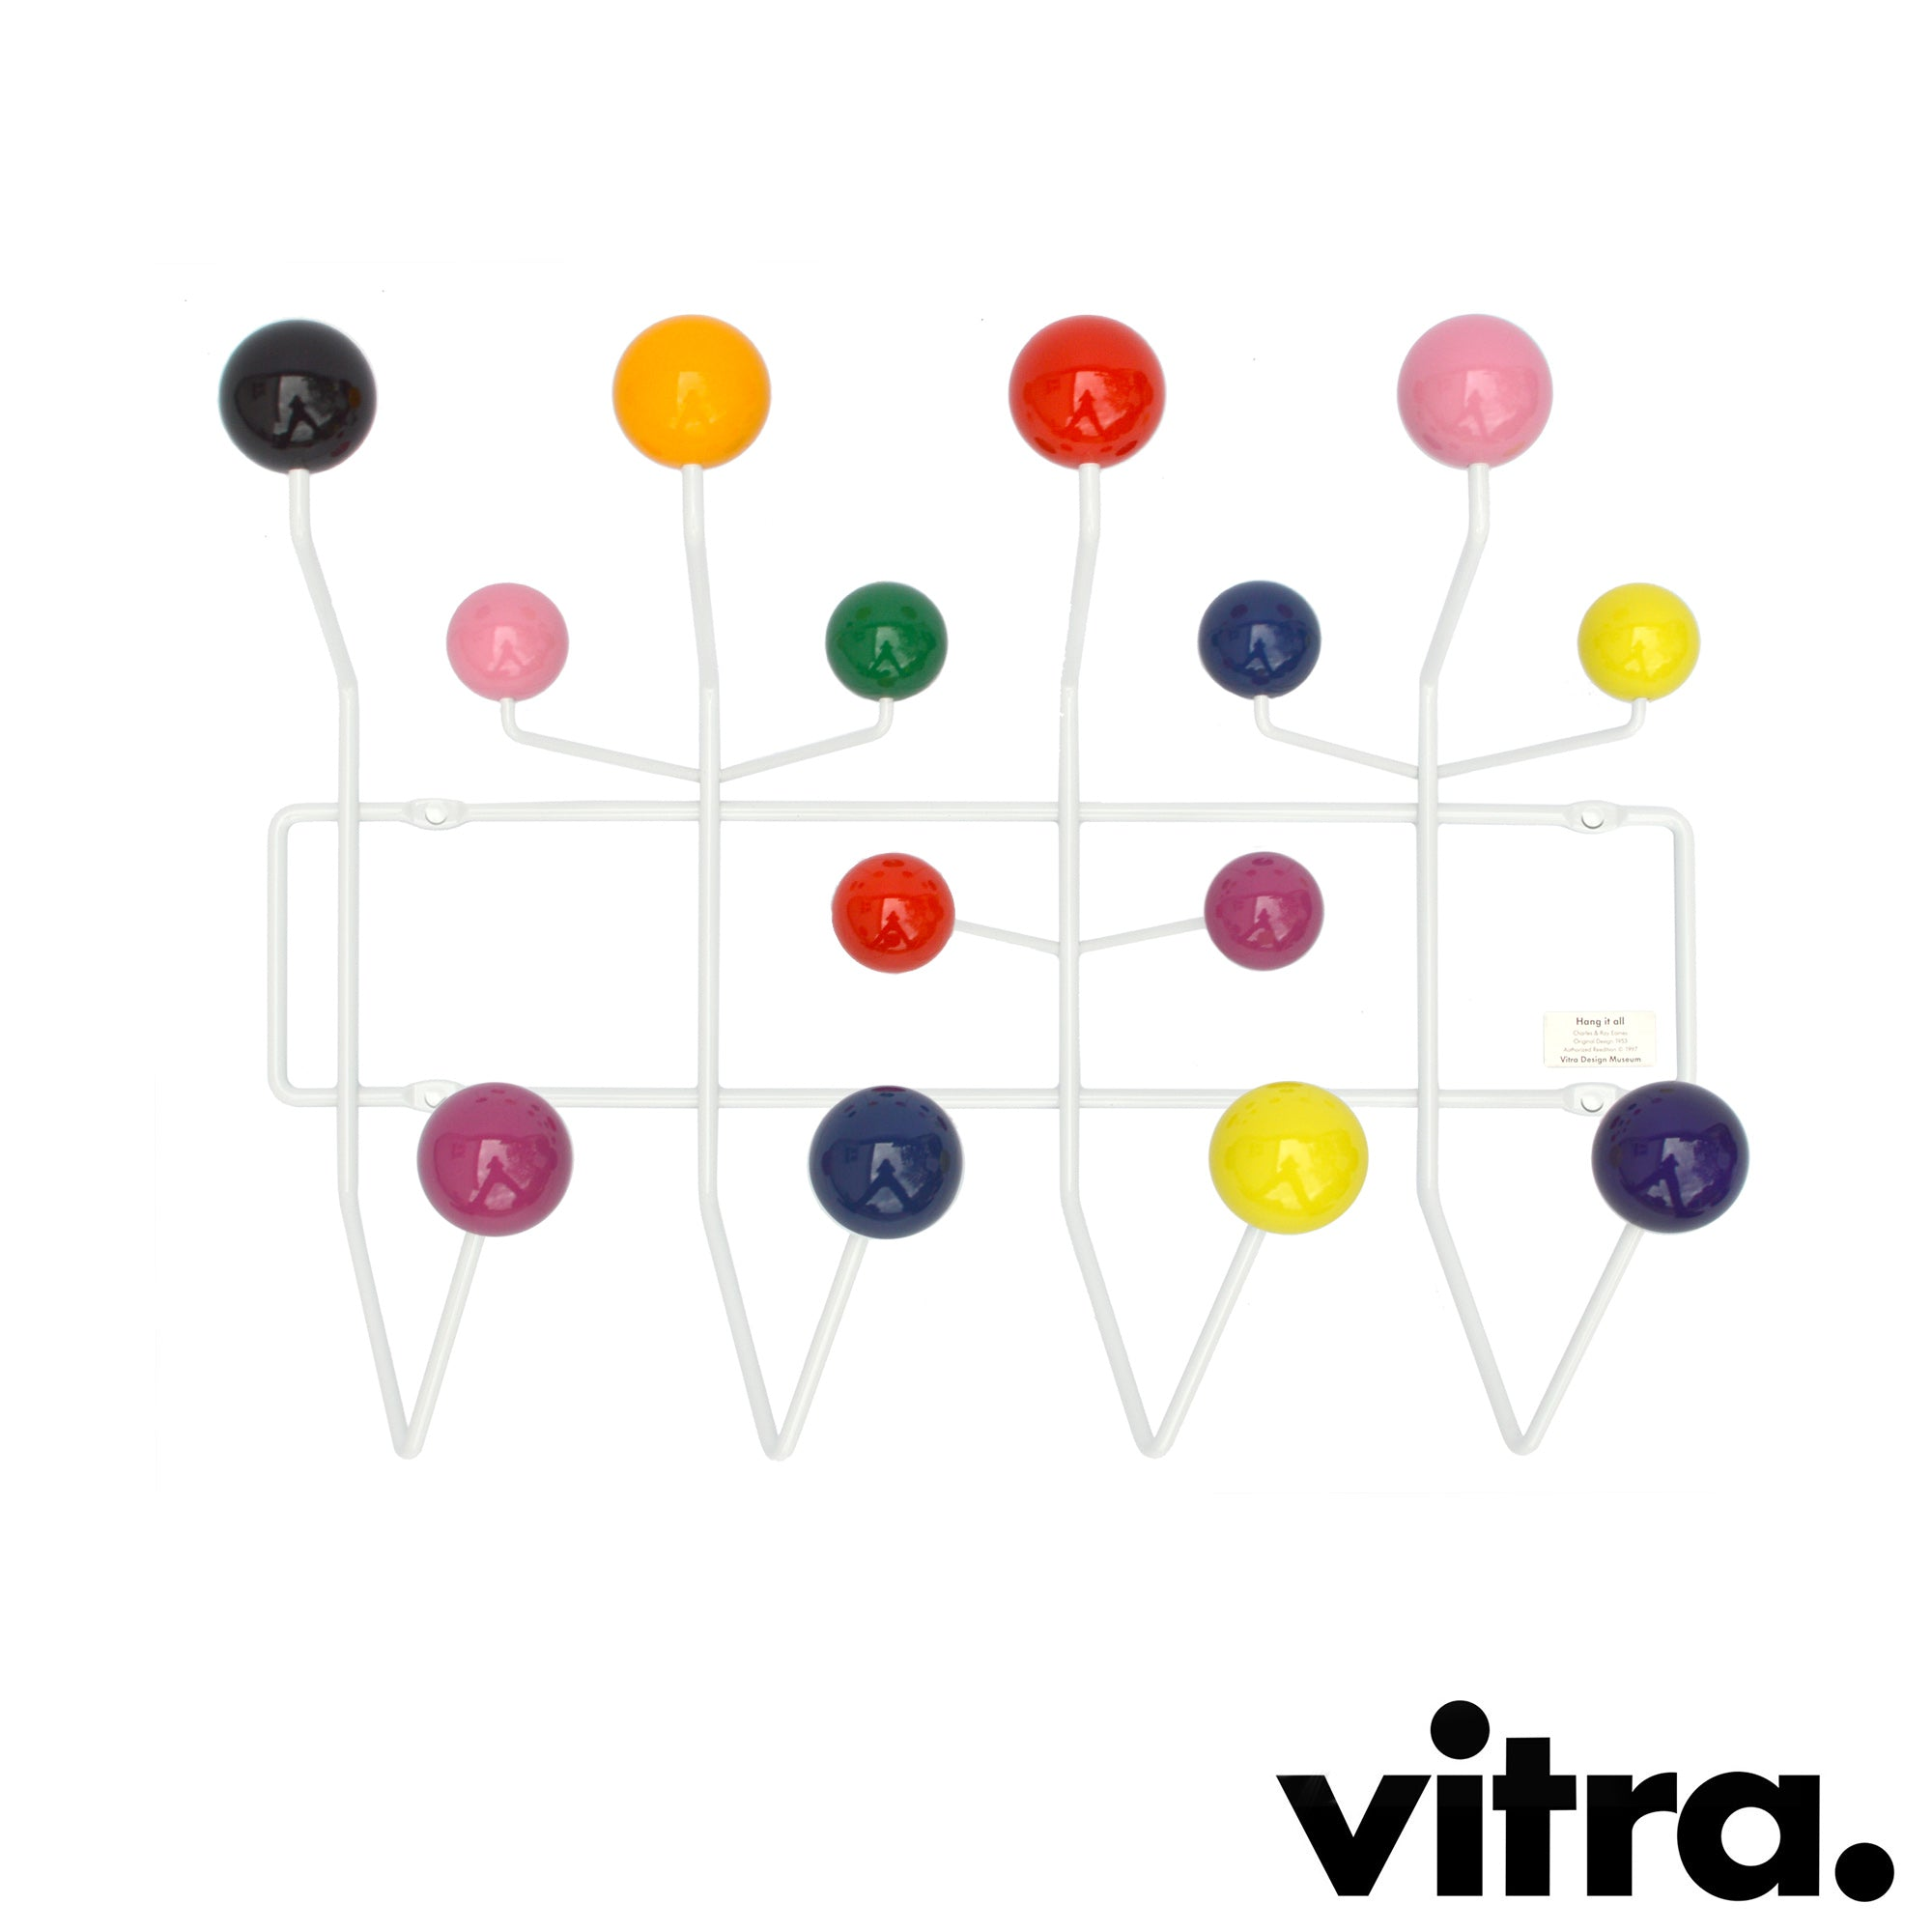 vitra - Hang it all, Charles & Ray Eames, 1953